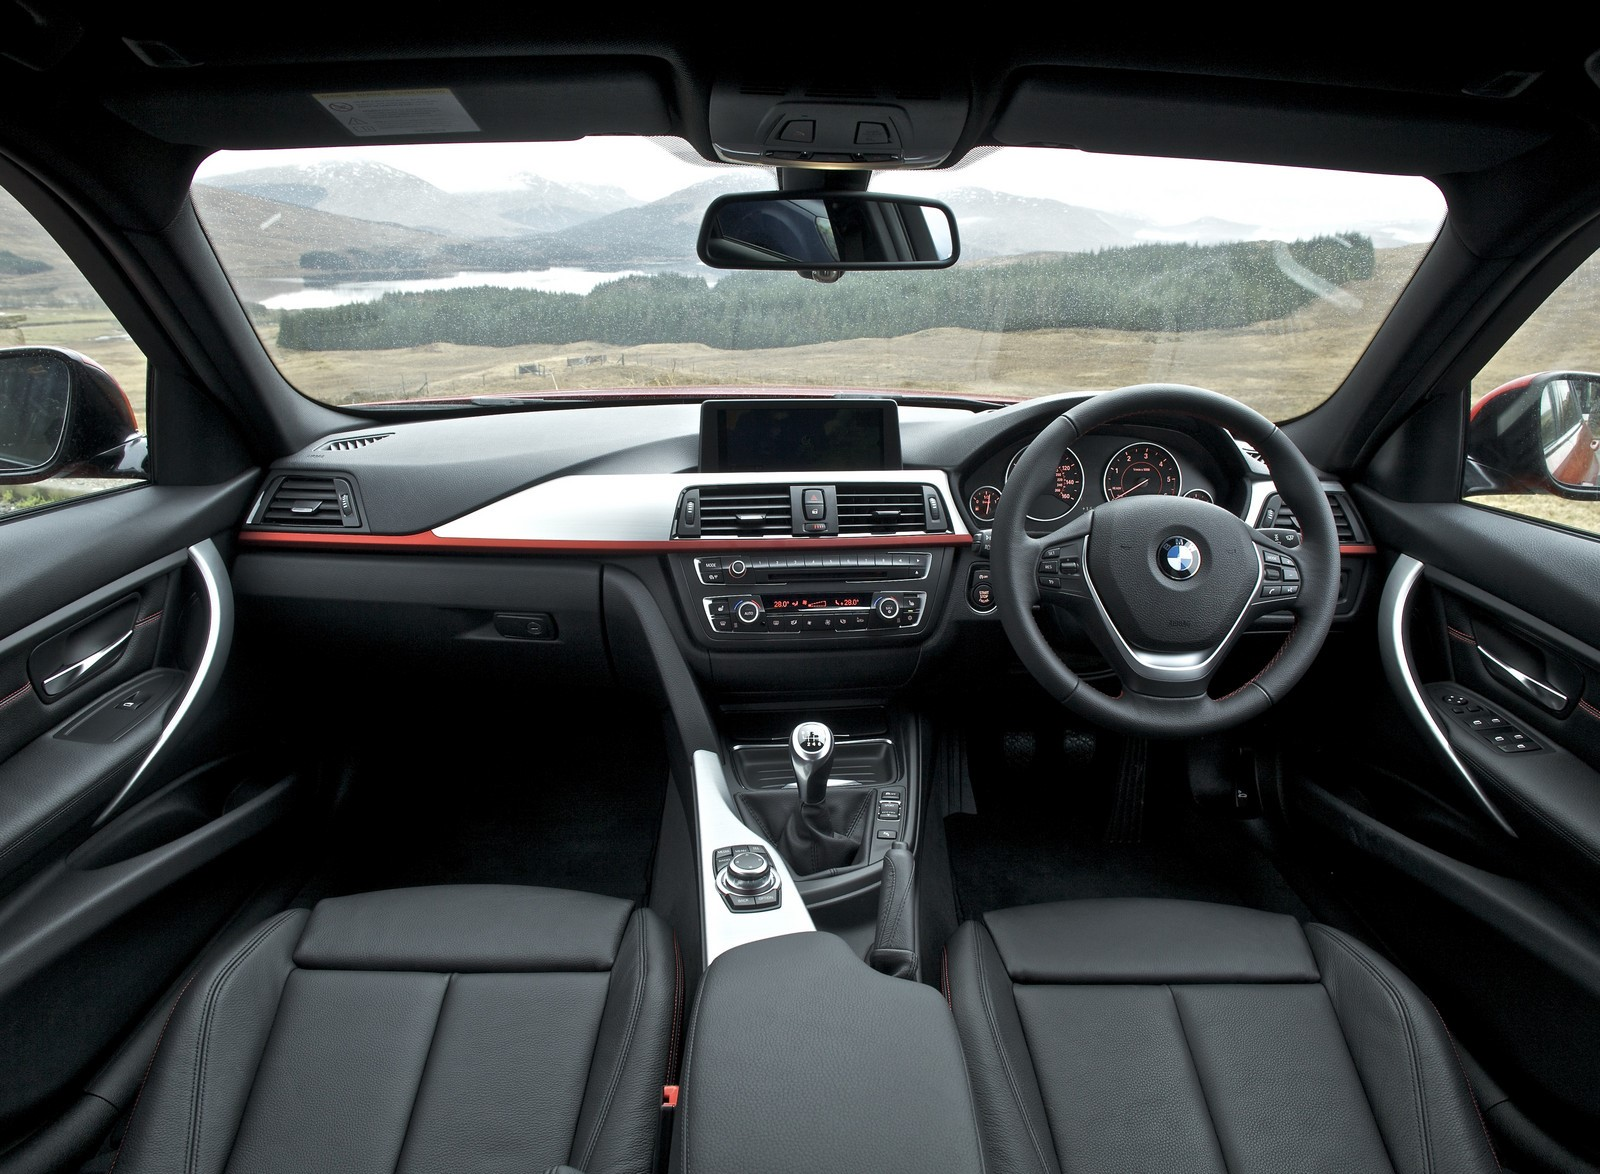 BMW 3 Series 2018 Interior Interior Cabin